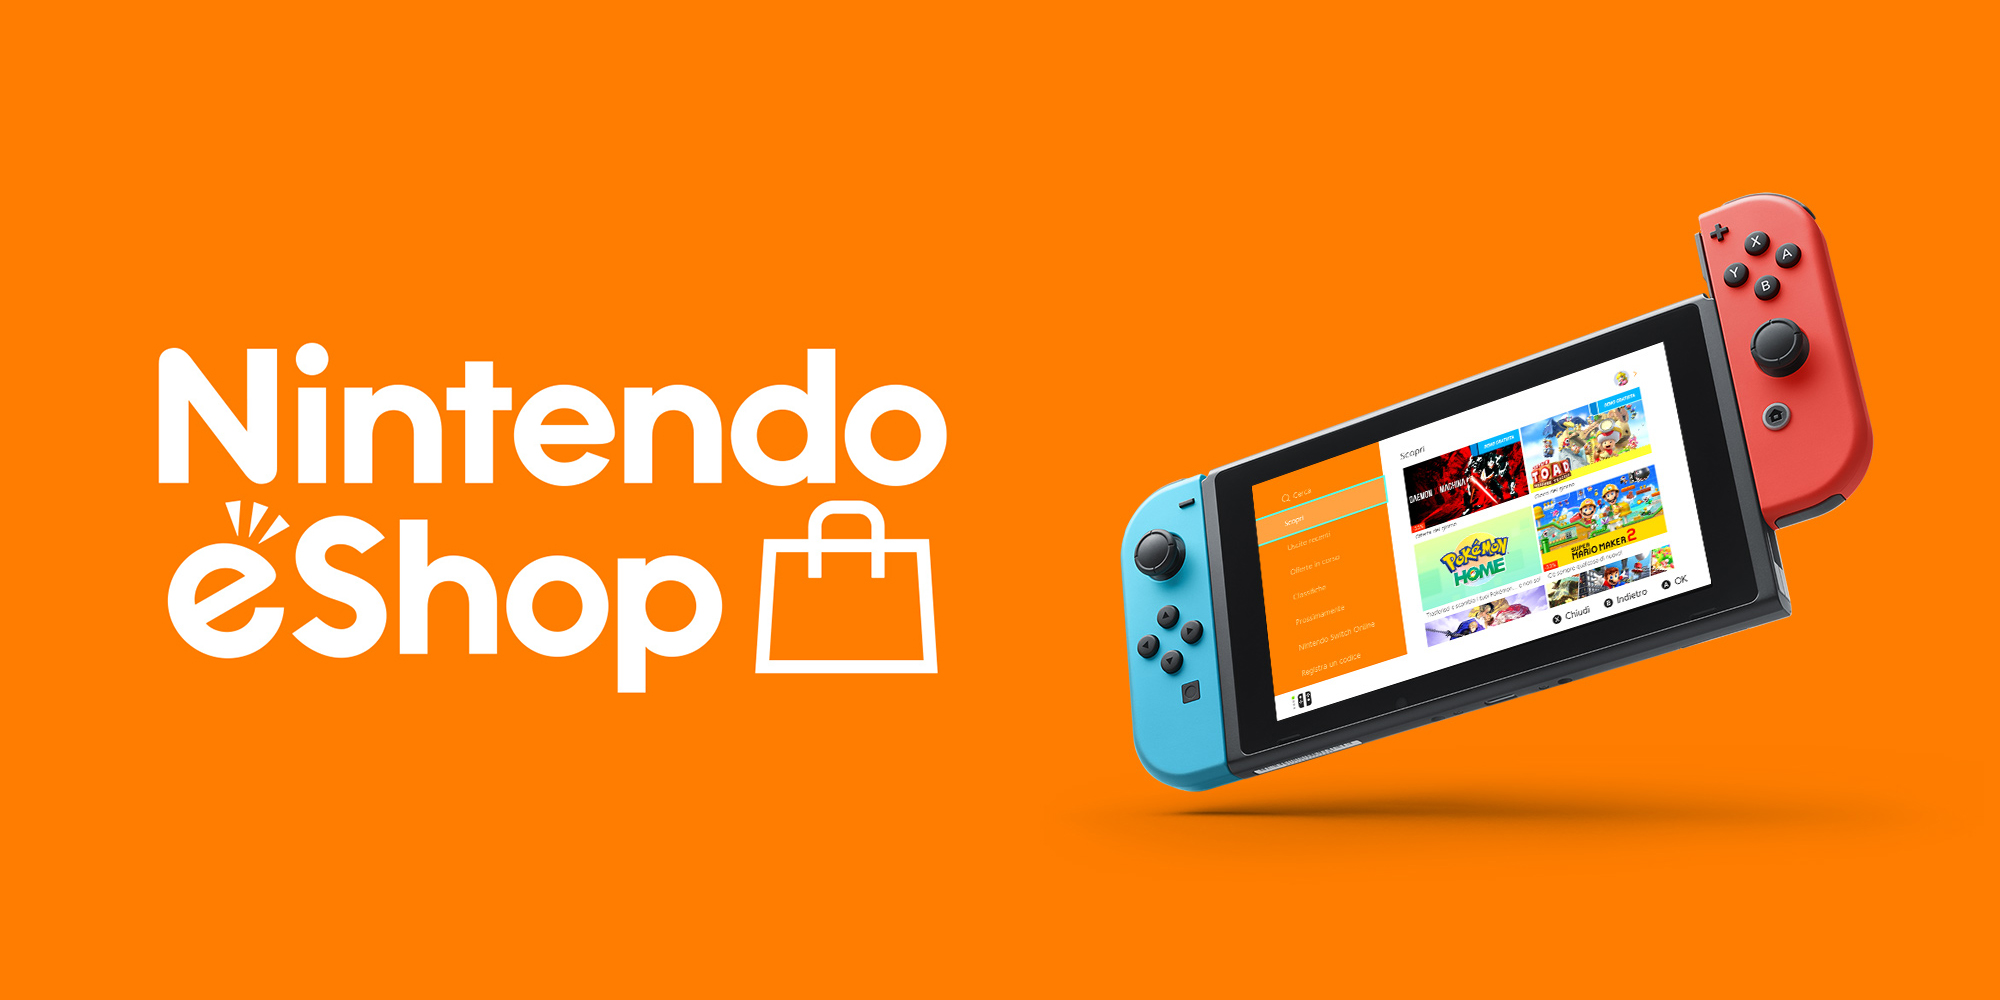 Nintendo eShop: discounts and offers on hundreds of multiplayer games are underway